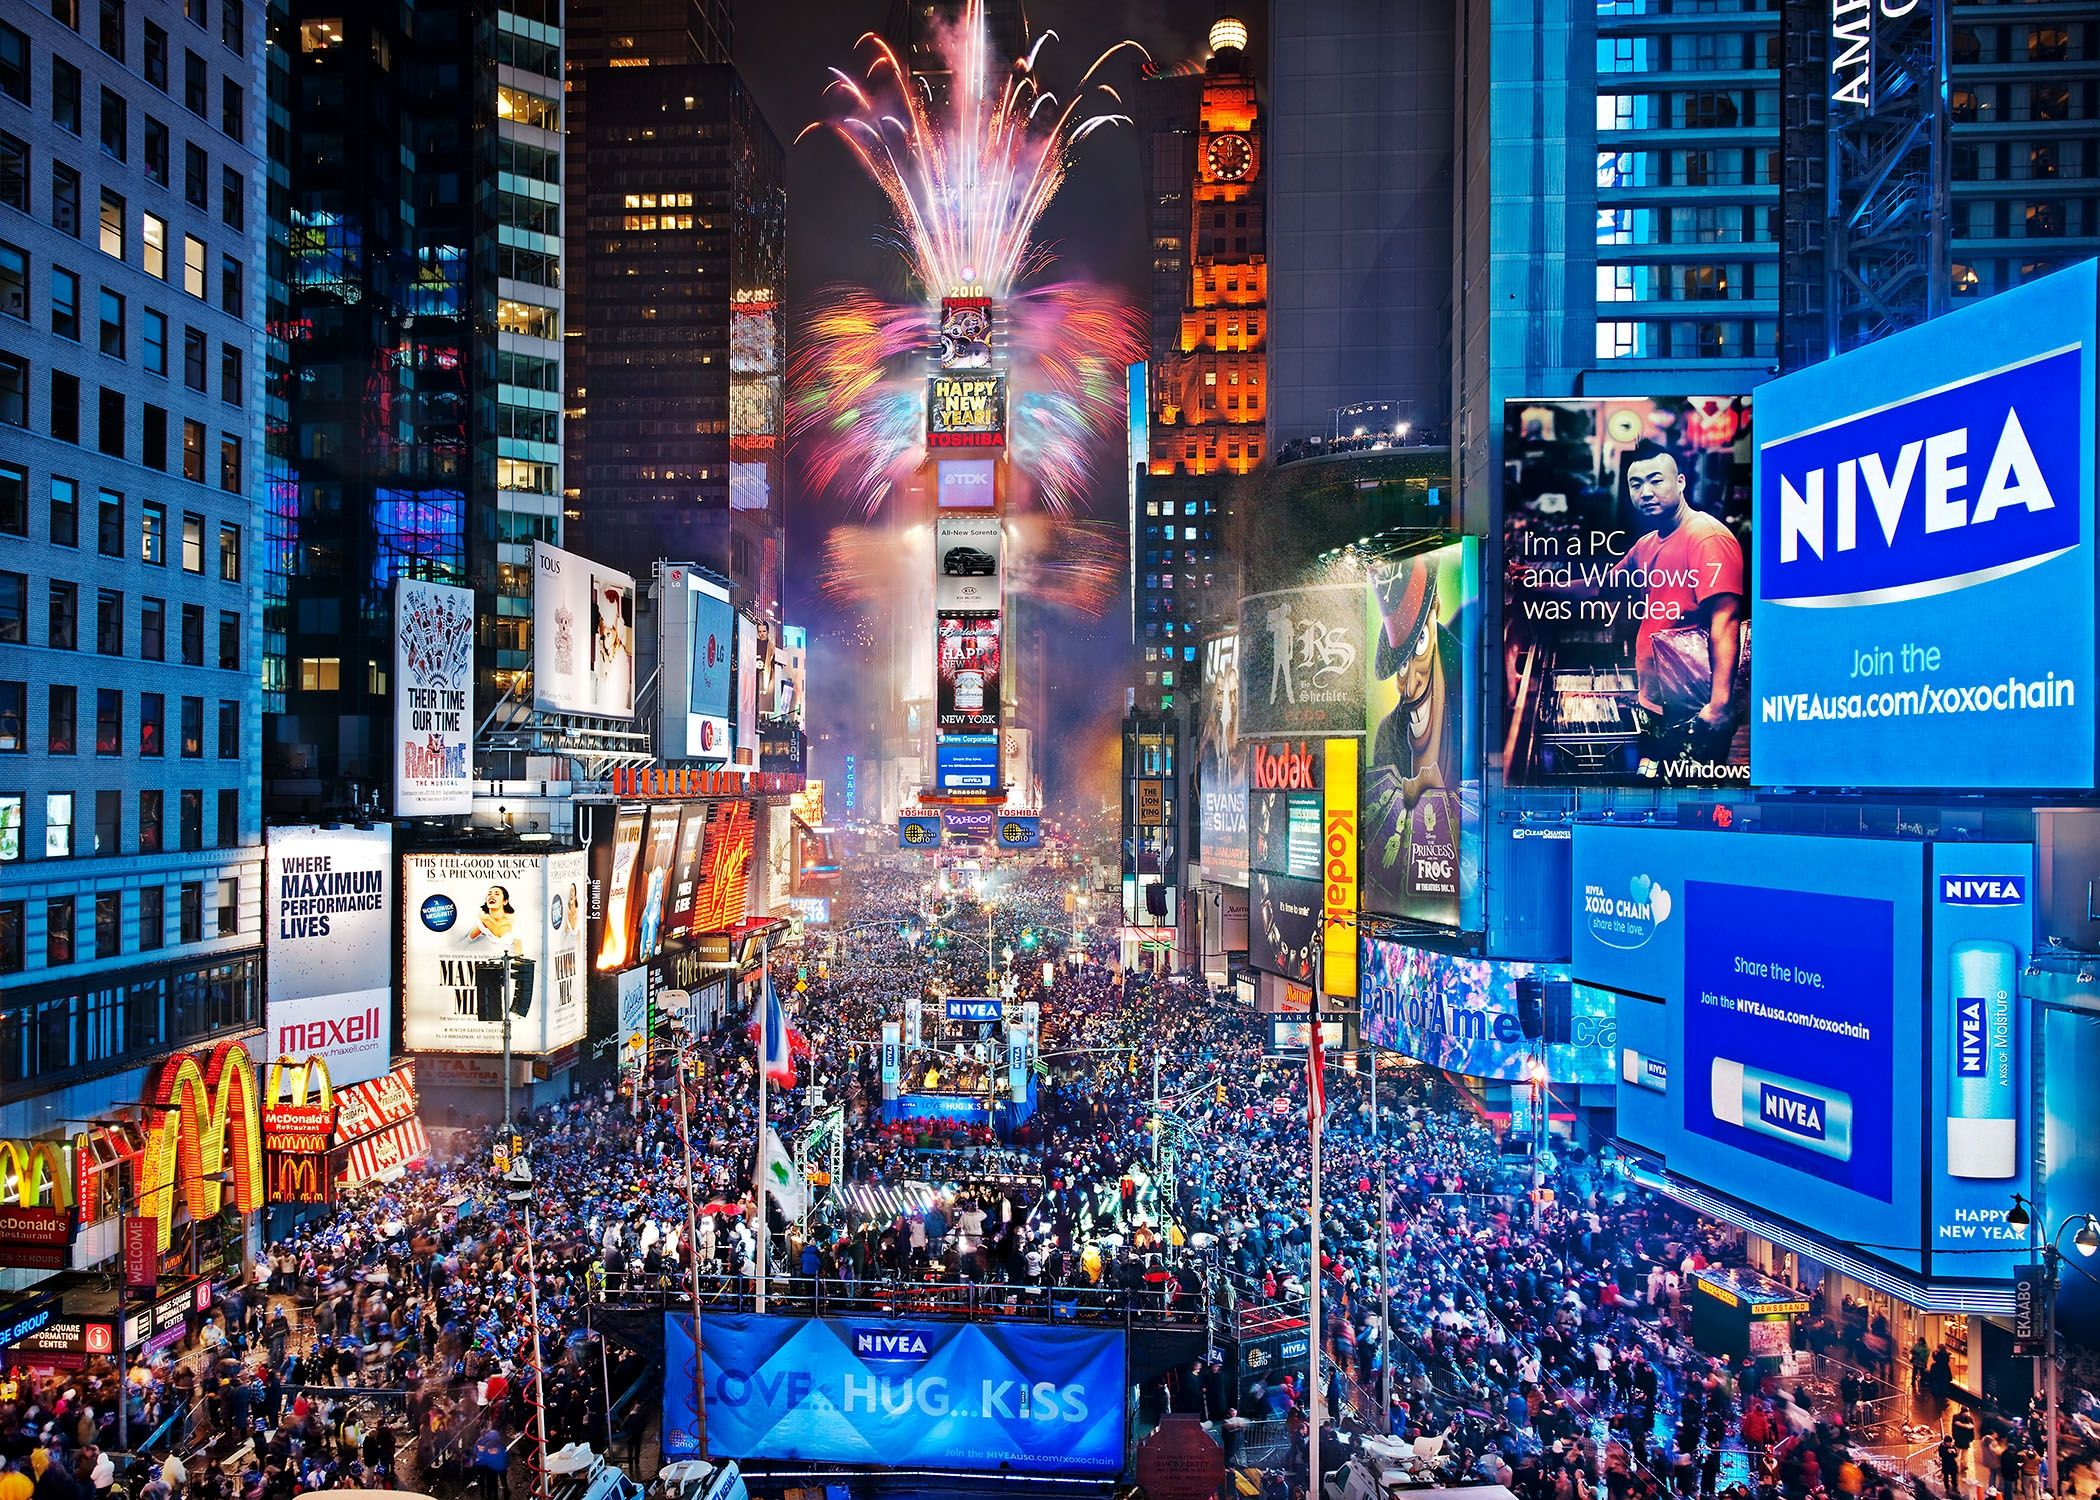 Times Square At Night Hd Wallpaper Background Images New Year Fireworks New Year S Eve Times Square New Years Eve